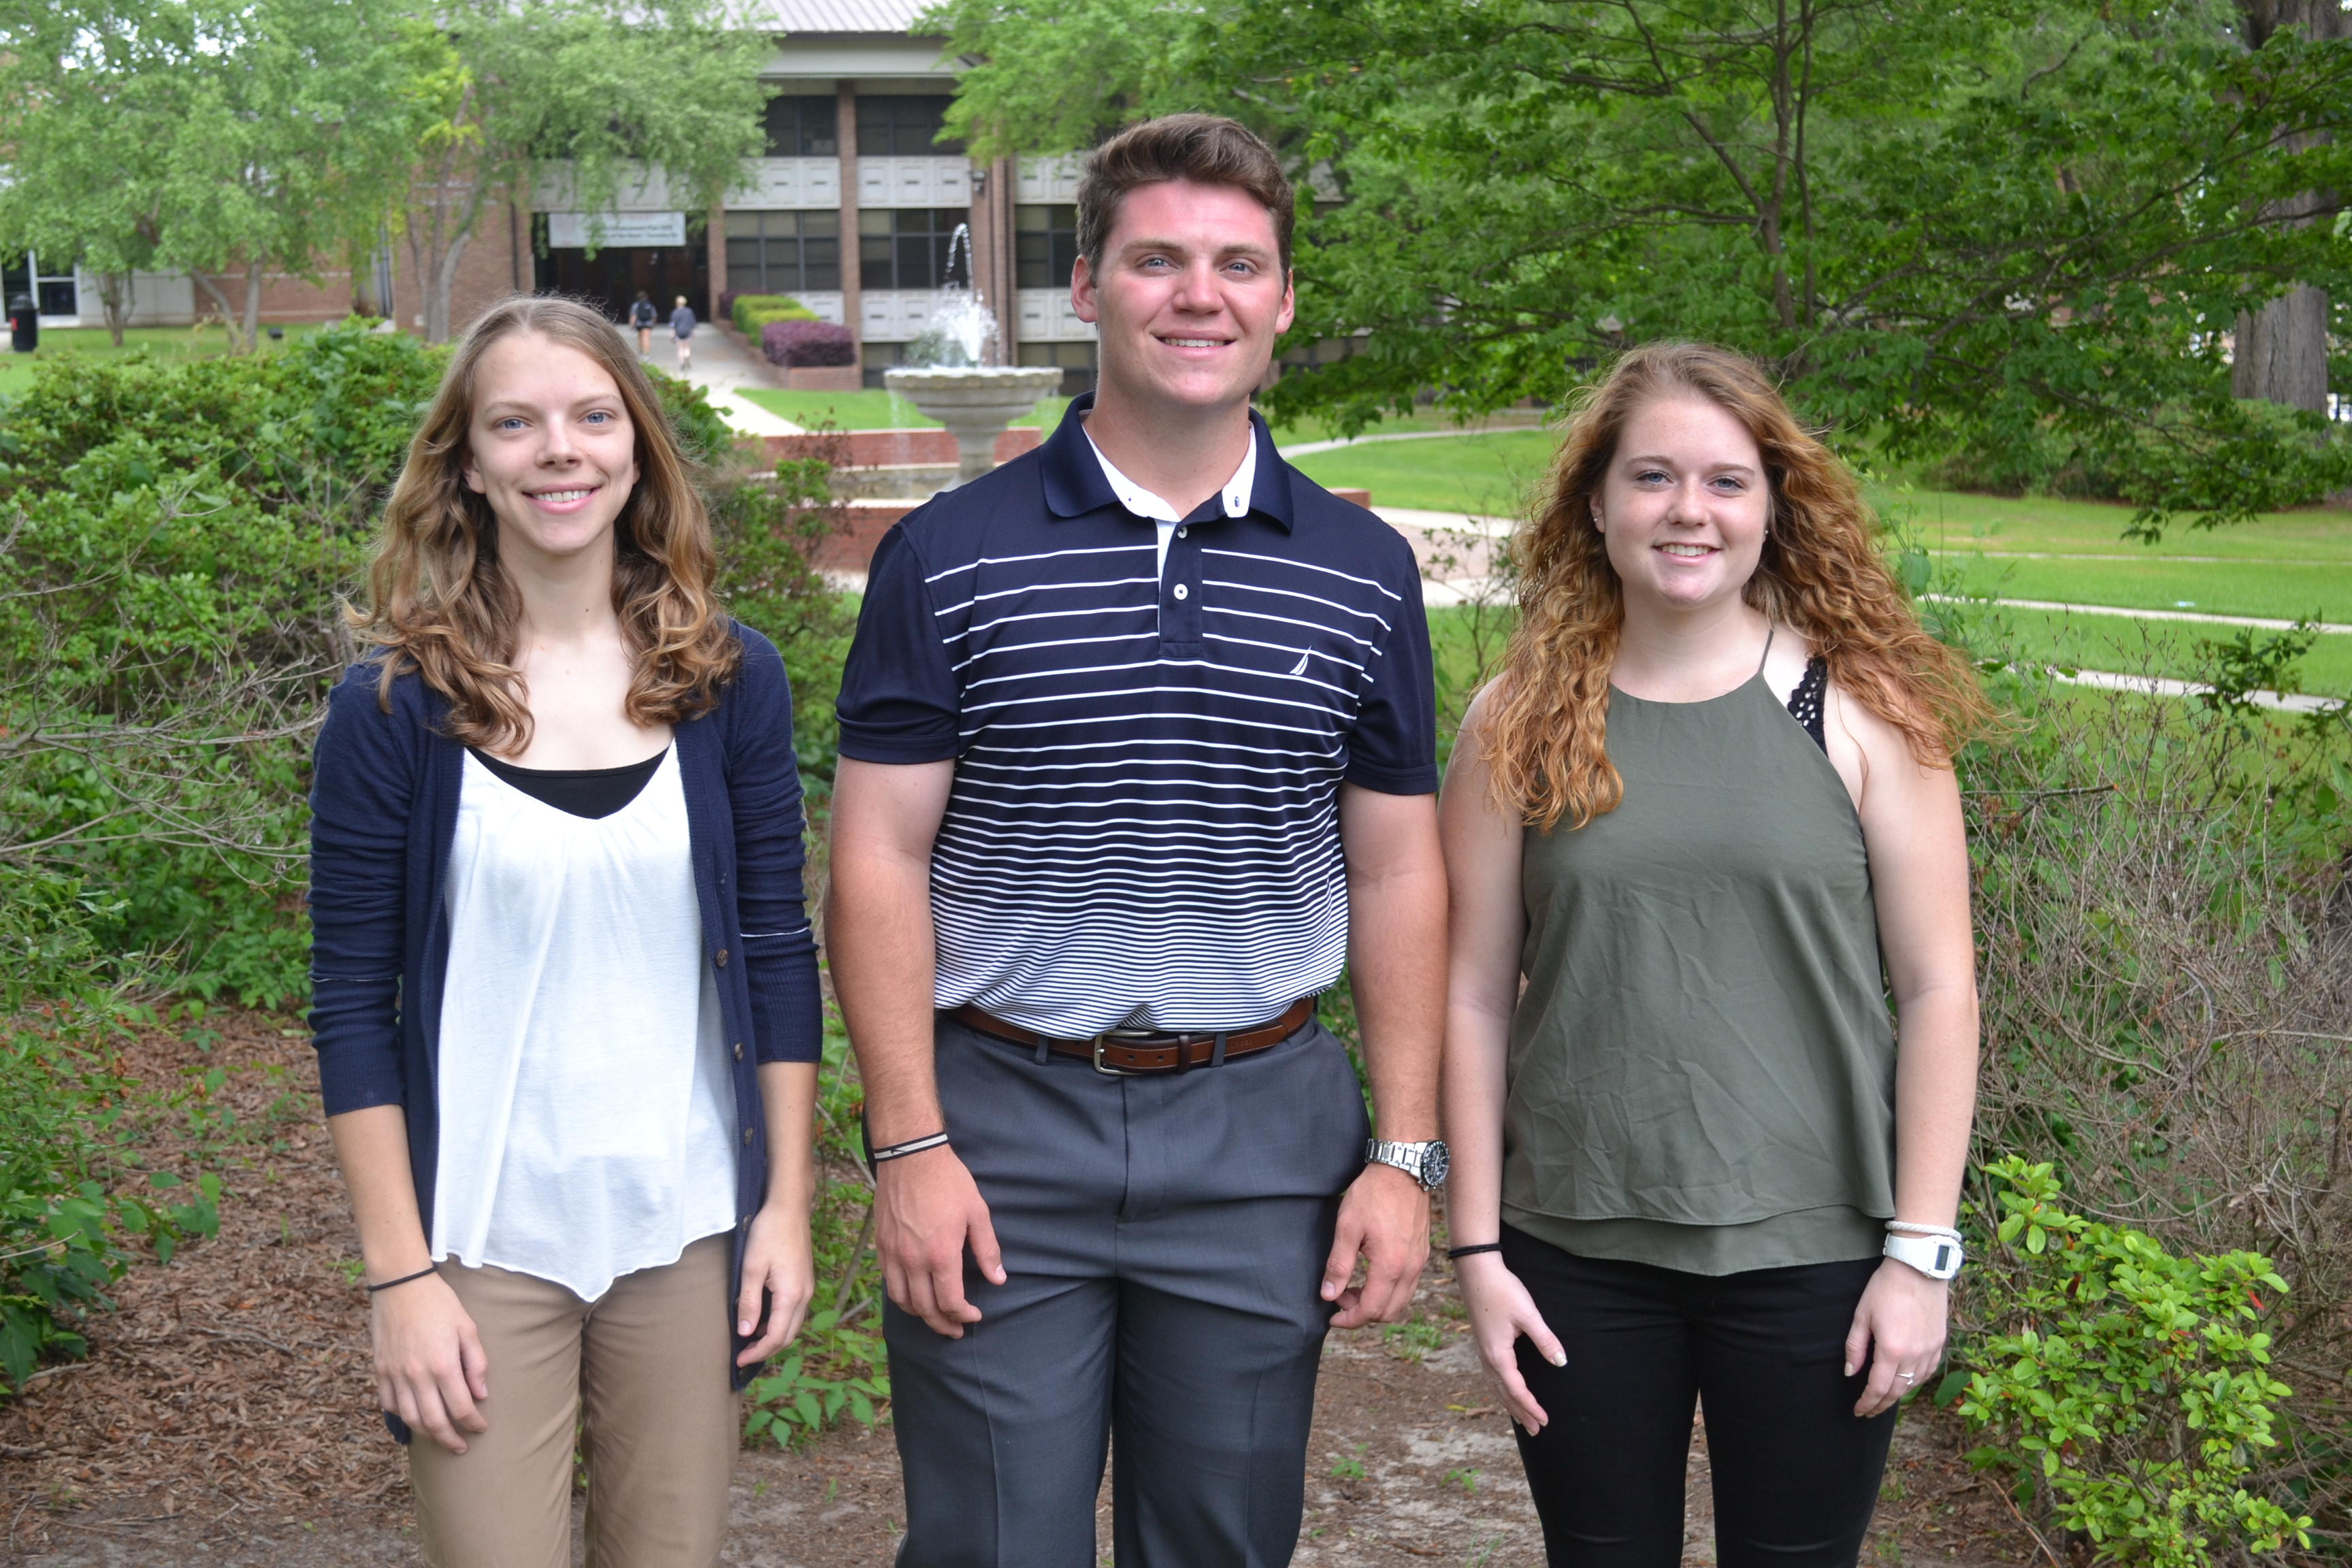 <p>The Muller Center at Newberry College proudly announces its Muller Student Research Fellows for the 2017-18 academic year. Benjamin Herring, Sarah Johnson and Mariah Lee will each spend a semester conducting research and using their findings to develop civic projects. &nbsp;</p>  <p>&nbsp;</p>  <p>&ldquo;The aim of the fellowship is to encourage students to connect academic learning to pressing civic and ethical issues,&rdquo; said Dr. Krista E. Hughes, Muller Center director. &ldquo;This is a concrete expression of Newberry College&rsquo;s mission, which links intellectual and personal development to engaged citizenship.&rdquo;</p>  <p>&nbsp;</p>  <p>Herring, a rising senior from Hopkins, S.C., will use a summer internship in Quito, Ecuador as the foundation for his project. Combining on-the-ground experience with research, he seeks to develop a strategic management system specifically for international non-governmental organizations. Locally he will work to educate about the global aspects of civic engagement.</p>  <p>&nbsp;</p>  <p>Johnson&rsquo;s project addresses early literacy and its impact on educational achievement</p>  <p>across the lifespan. A rising junior and a South Carolina Teaching Fellow from Ruby, S.C., she will focus specifically on the question of how to increase access to books and reading in the home, both to strengthen early literacy in very young children and to address the loss of reading skills when students are not in school over the summer.</p>  <p>&nbsp;</p>  <p>Lee, a rising sophomore from Seaford, Del., will conduct laboratory research in microbiology this summer at the University of Georgia. Upon returning to Newberry, she will investigate vaccination rates among elderly populations in Newberry County and develop educational materials on the importance of community-wide vaccinations for preventing the spread of disease.</p>  <p>&nbsp;</p>  <p>&ldquo;The disciplinary variety of these three projects is really exciting,&rdquo; Hughes said. &ldquo;They show the wide possibilities for civic engagement. We are pleased by the clear commitment of this class of Muller Fellows to draw their campus peers into their civic projects.&rdquo; She added, &ldquo;Student leadership is a key motivator of student engagement. All three of these Fellows are already leaders on campus and, thanks to their work, I expect enthusiasm for civic engagement to grow in the 2017-18 year.&rdquo;</p>